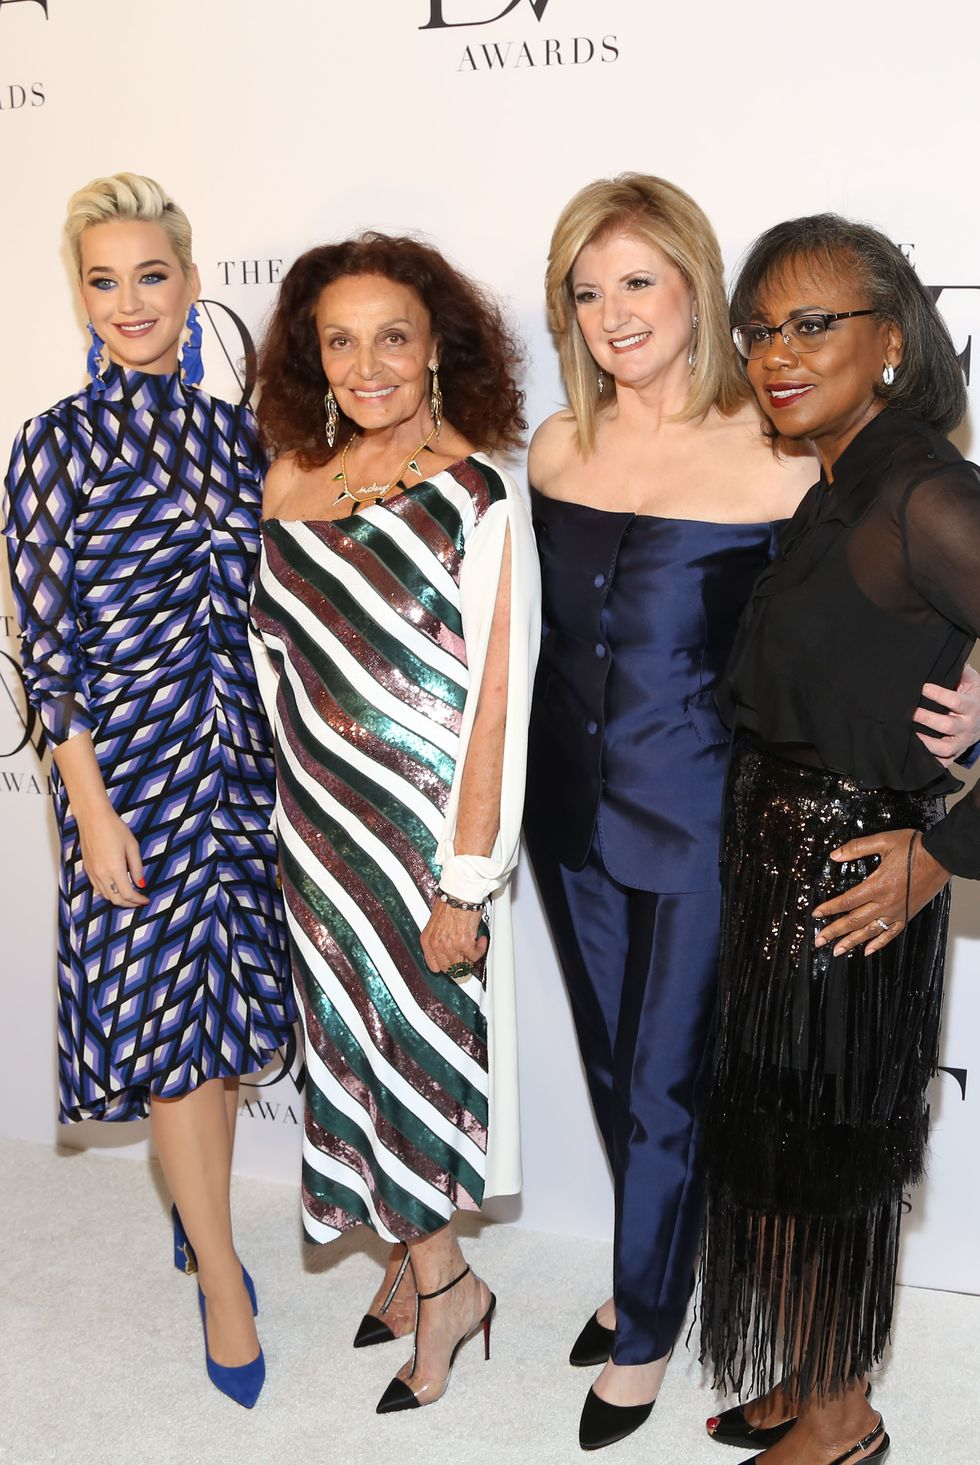 Katy Perry, DVF, Arianna Huffington, and Anita Hill